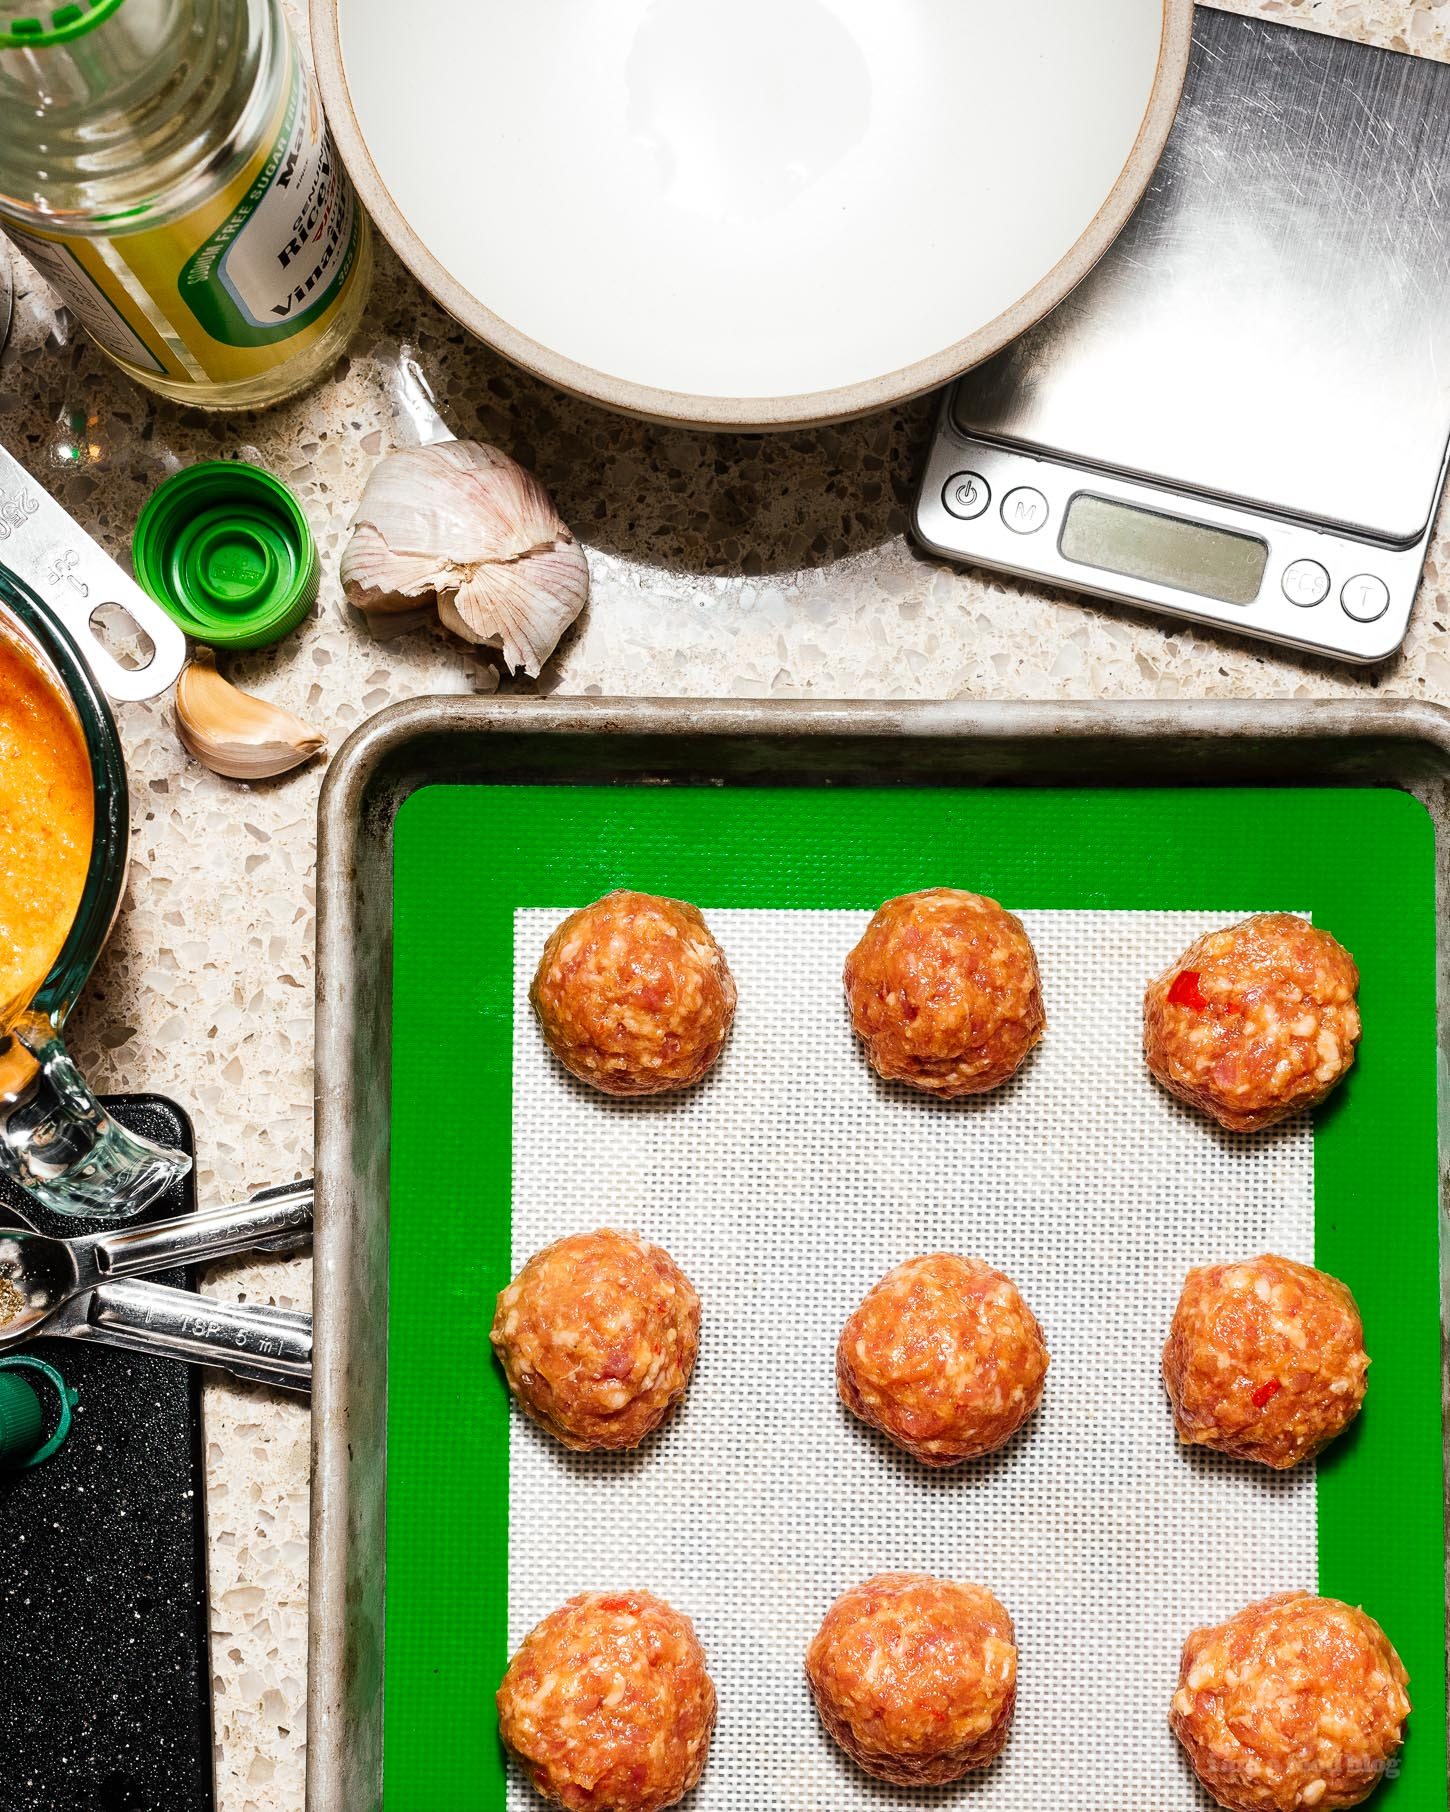 These low carb, keto friendly piri piri pork meatballs bring the spice and flavor. They're baked in the oven for maximum ease and are served with cooling Greek yogurt for a tangy, creamy contrast. No more breadcrumbs! #piripiri #meatballs #recipes #dinner #bakedmeatballs #lowcarb #keto #ketorecipes #ketofriendly